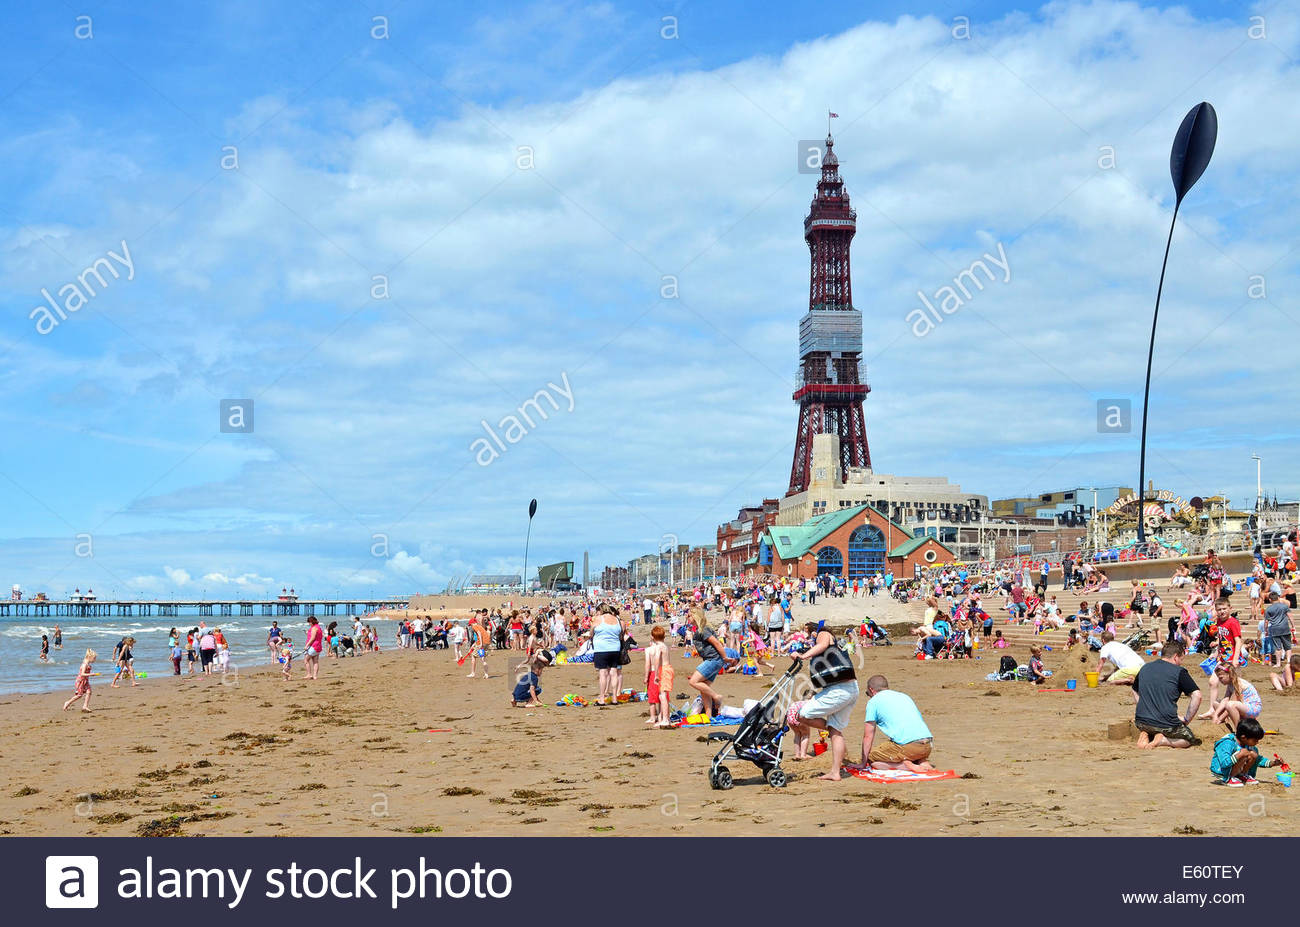 families on the beach at blackpool, england, uk - Stock Image